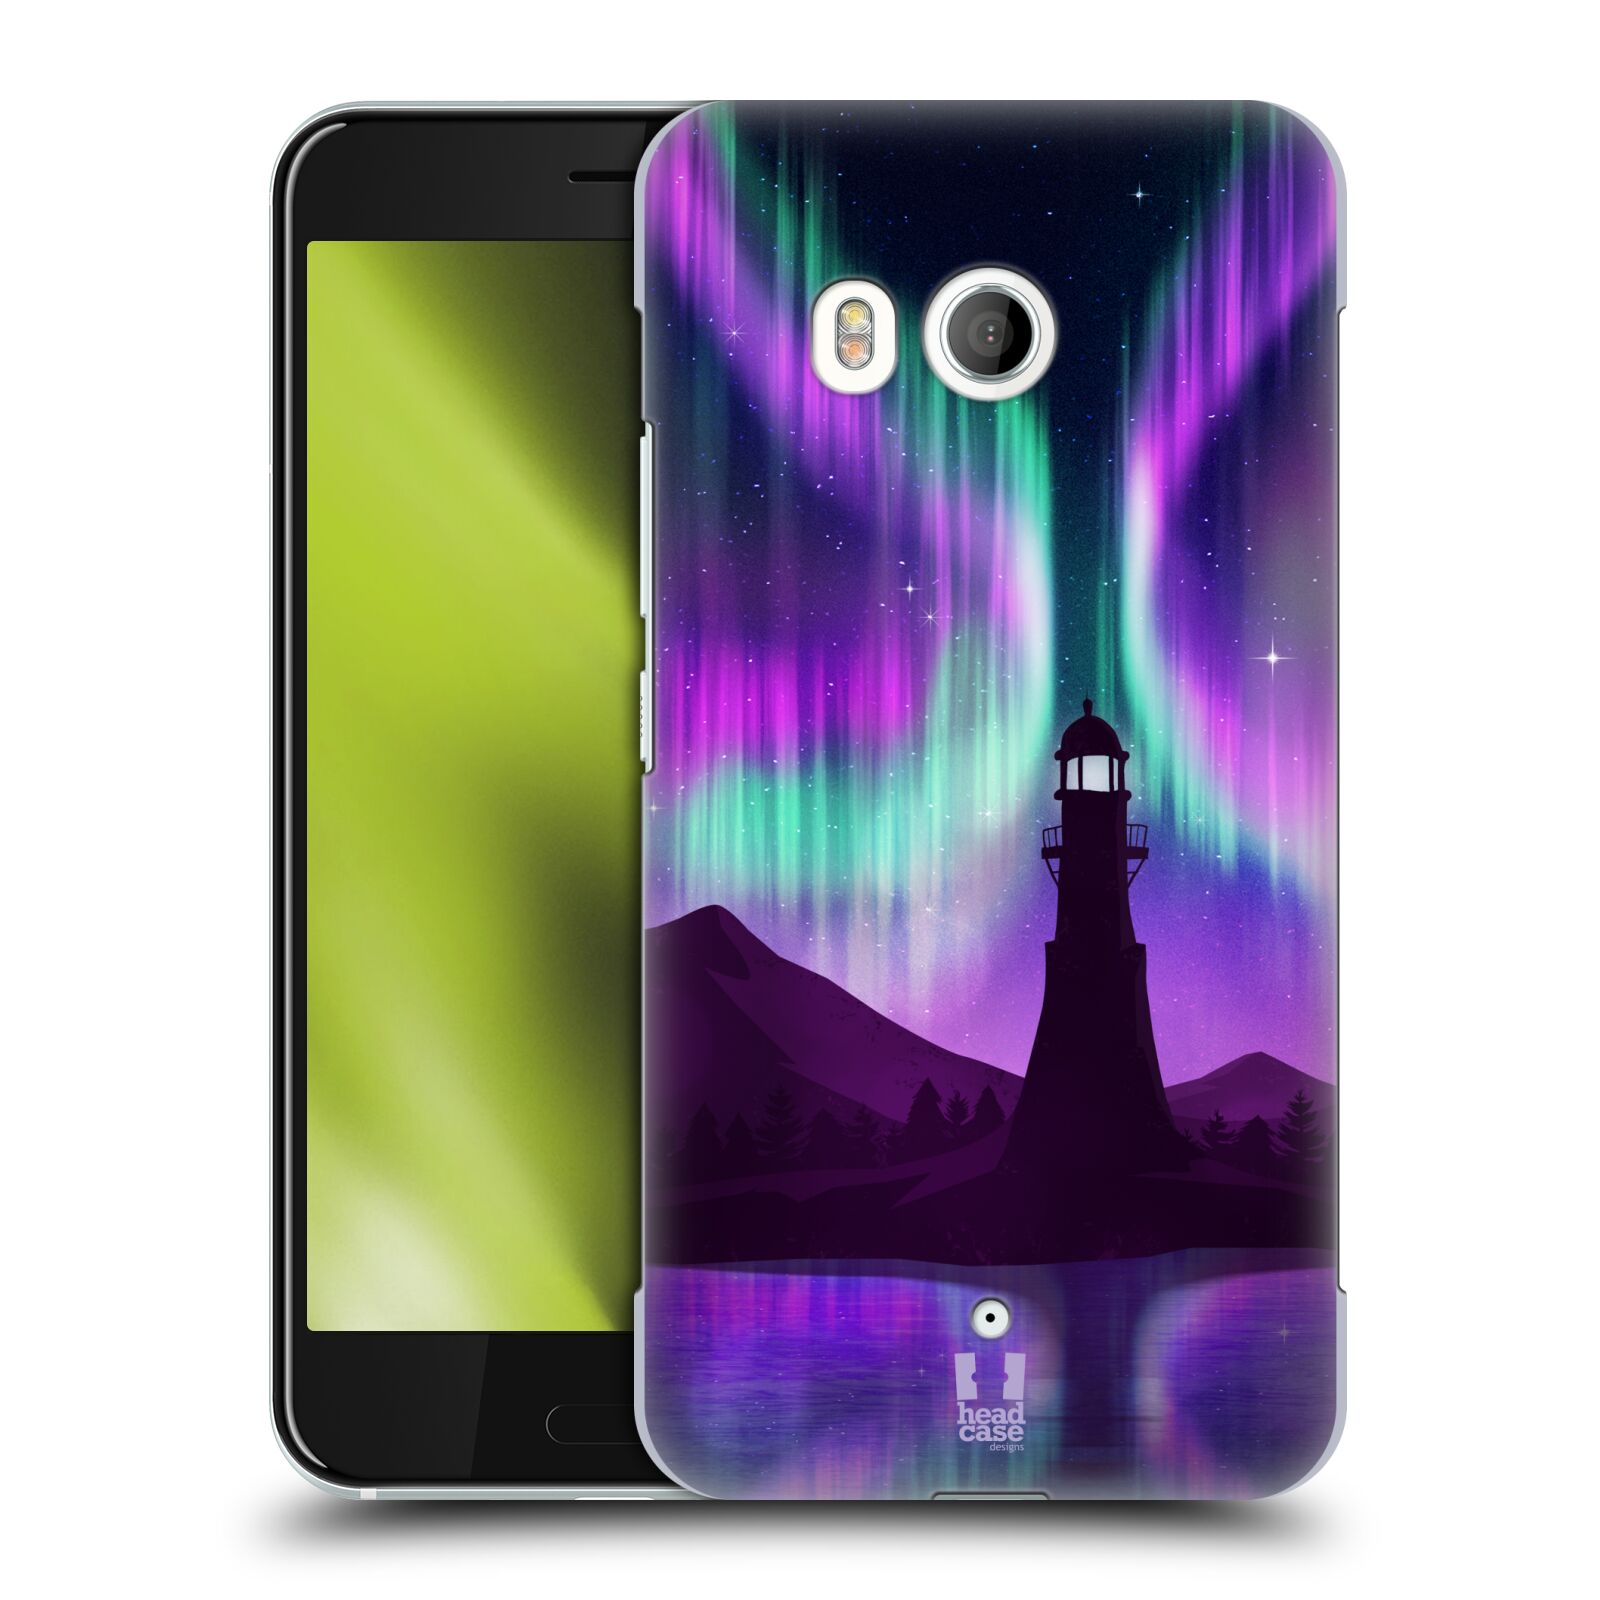 HEAD-CASE-DESIGNS-NORTHERN-LIGHTS-HARD-BACK-CASE-FOR-HTC-PHONES-1